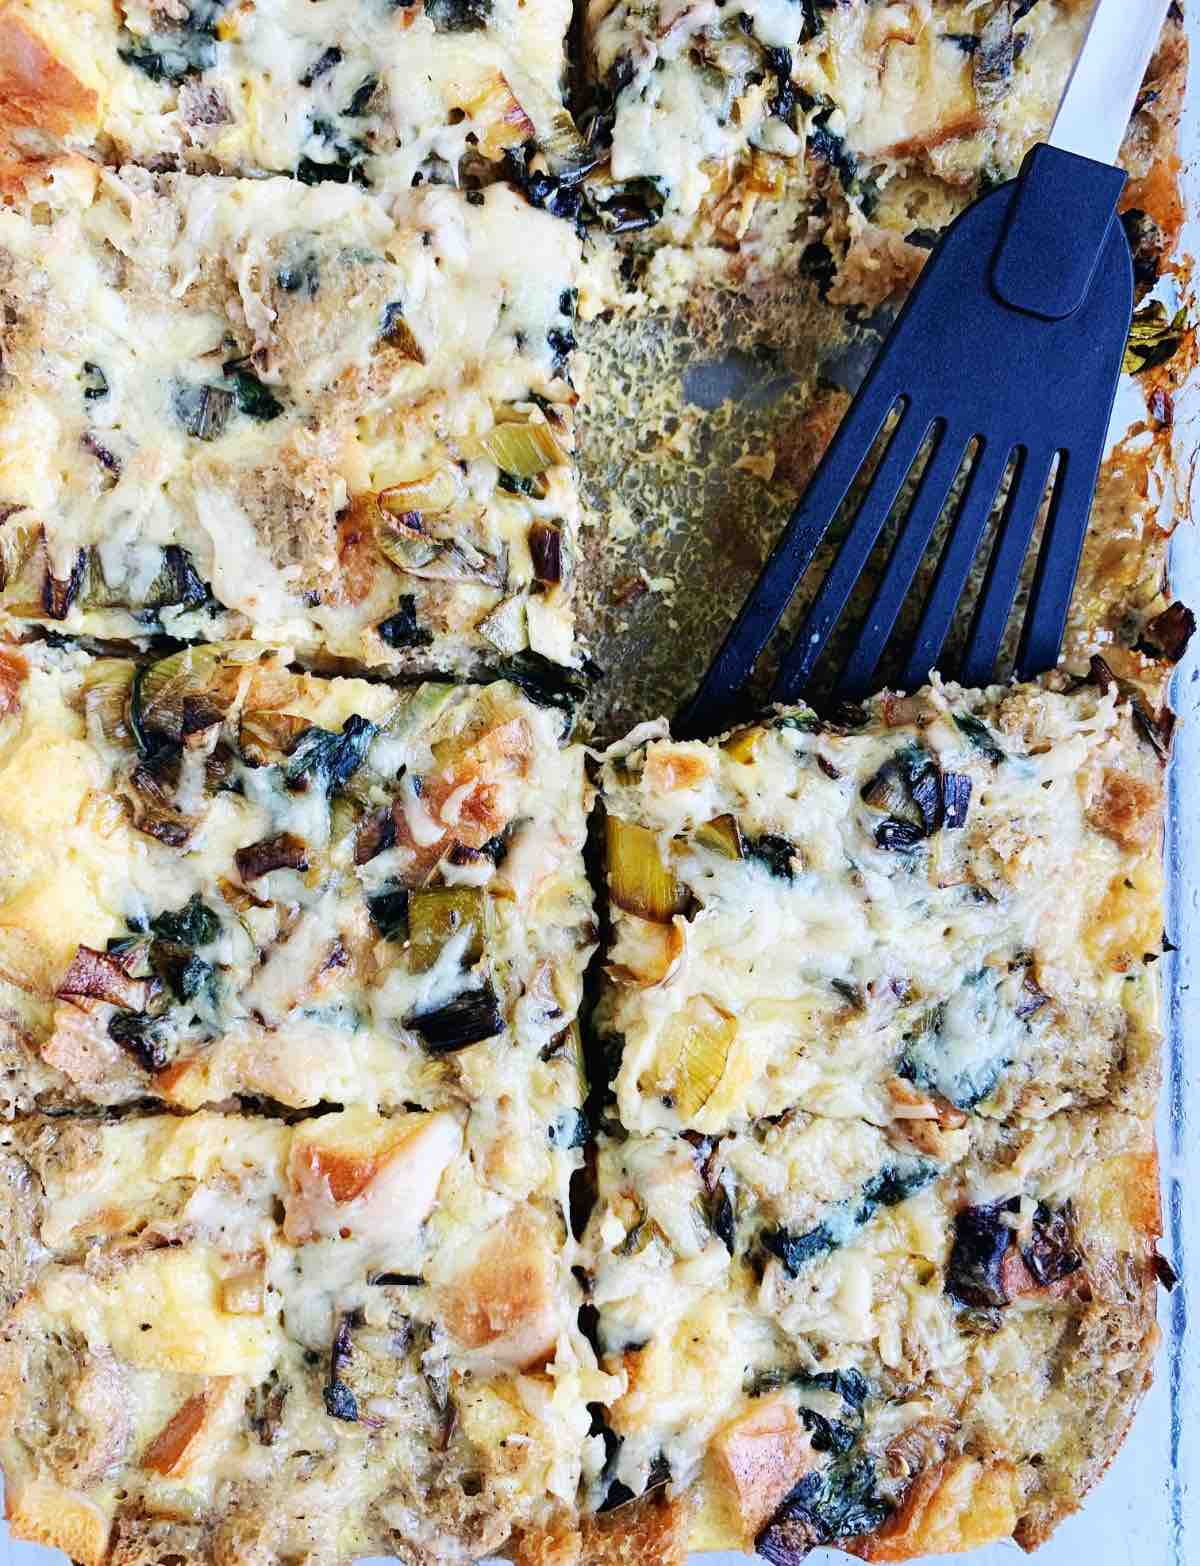 Gluten Free Breakfast Casserole with a black spatula for serving.